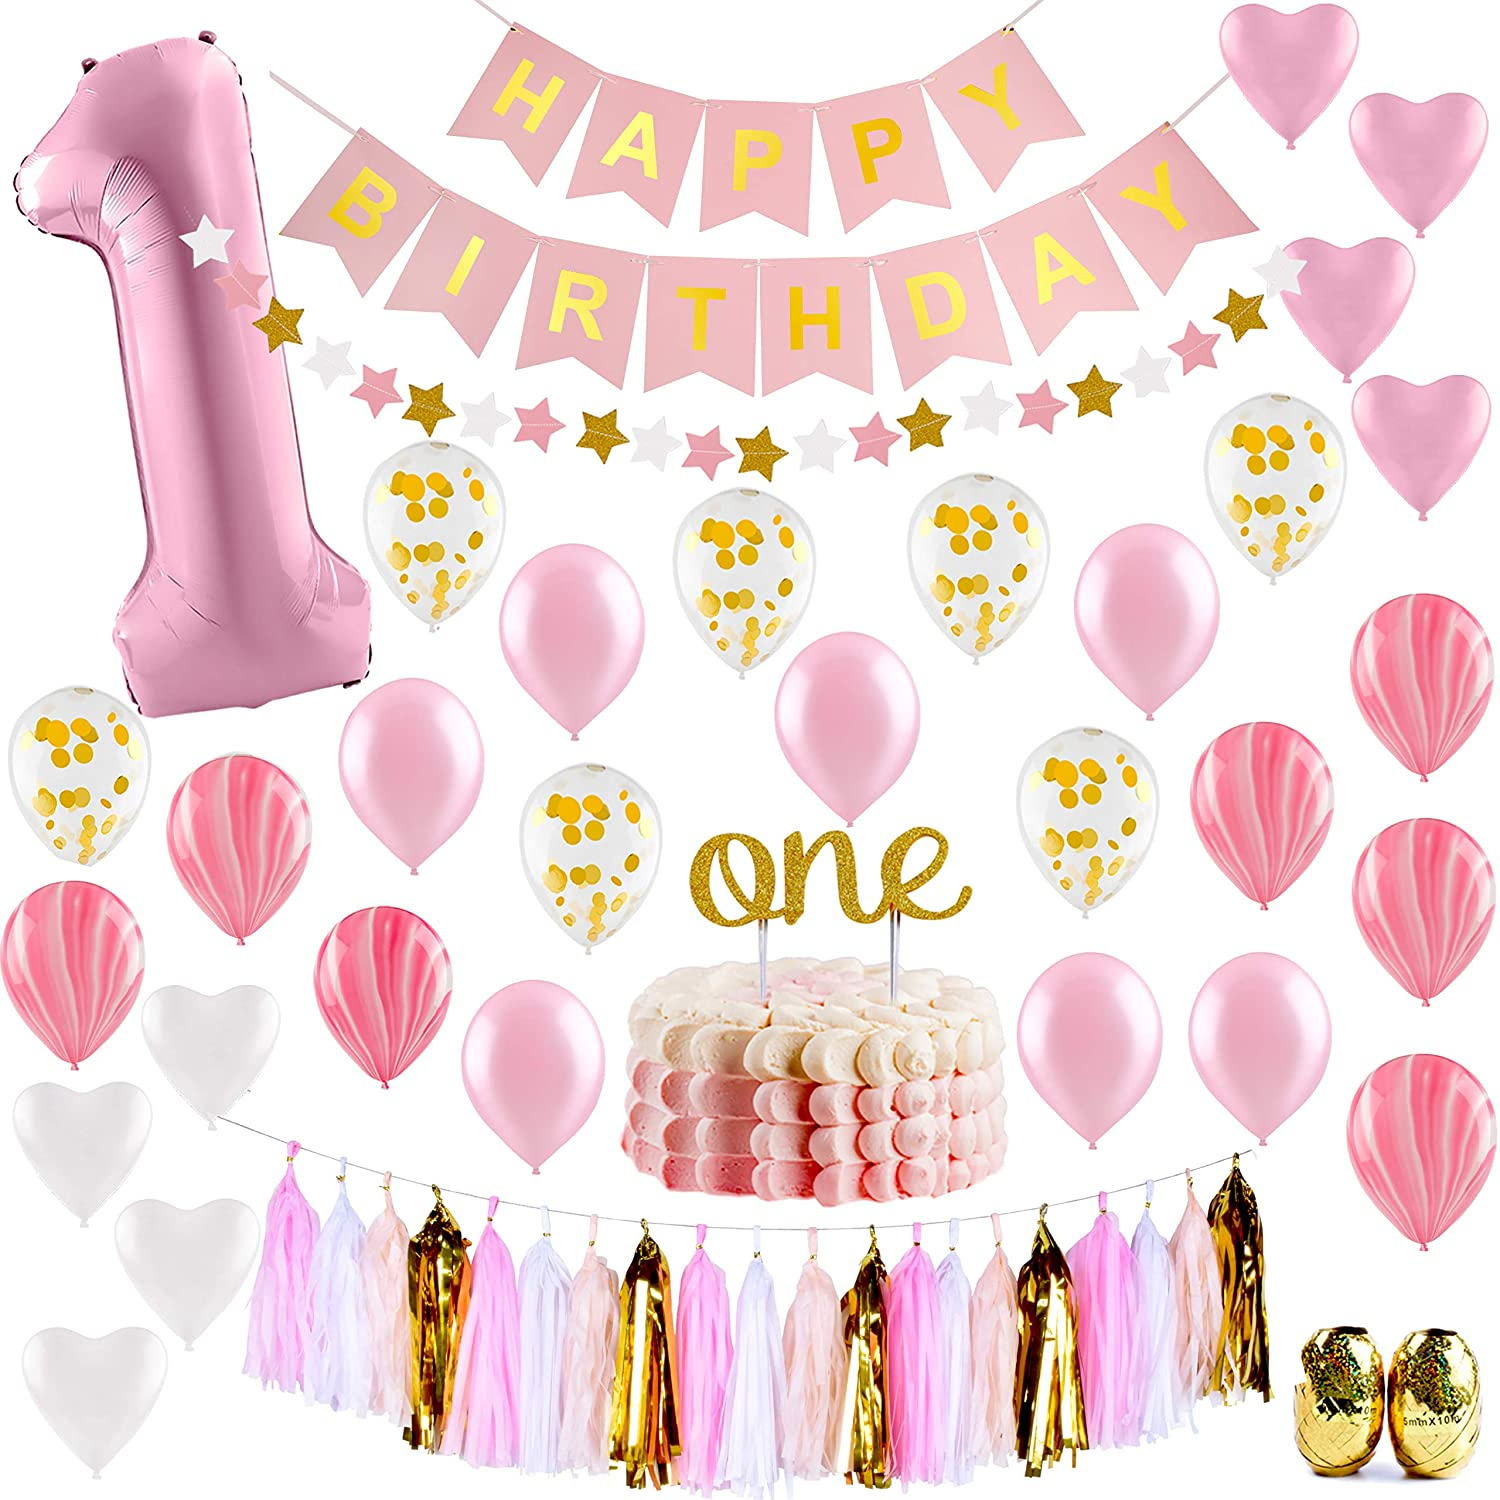 Baby Girl First Birthday Decorations 1st Birthday Girl Decorations Pink And Gold Party Supplies Happy First Birthday Banner Number 1 Heart And